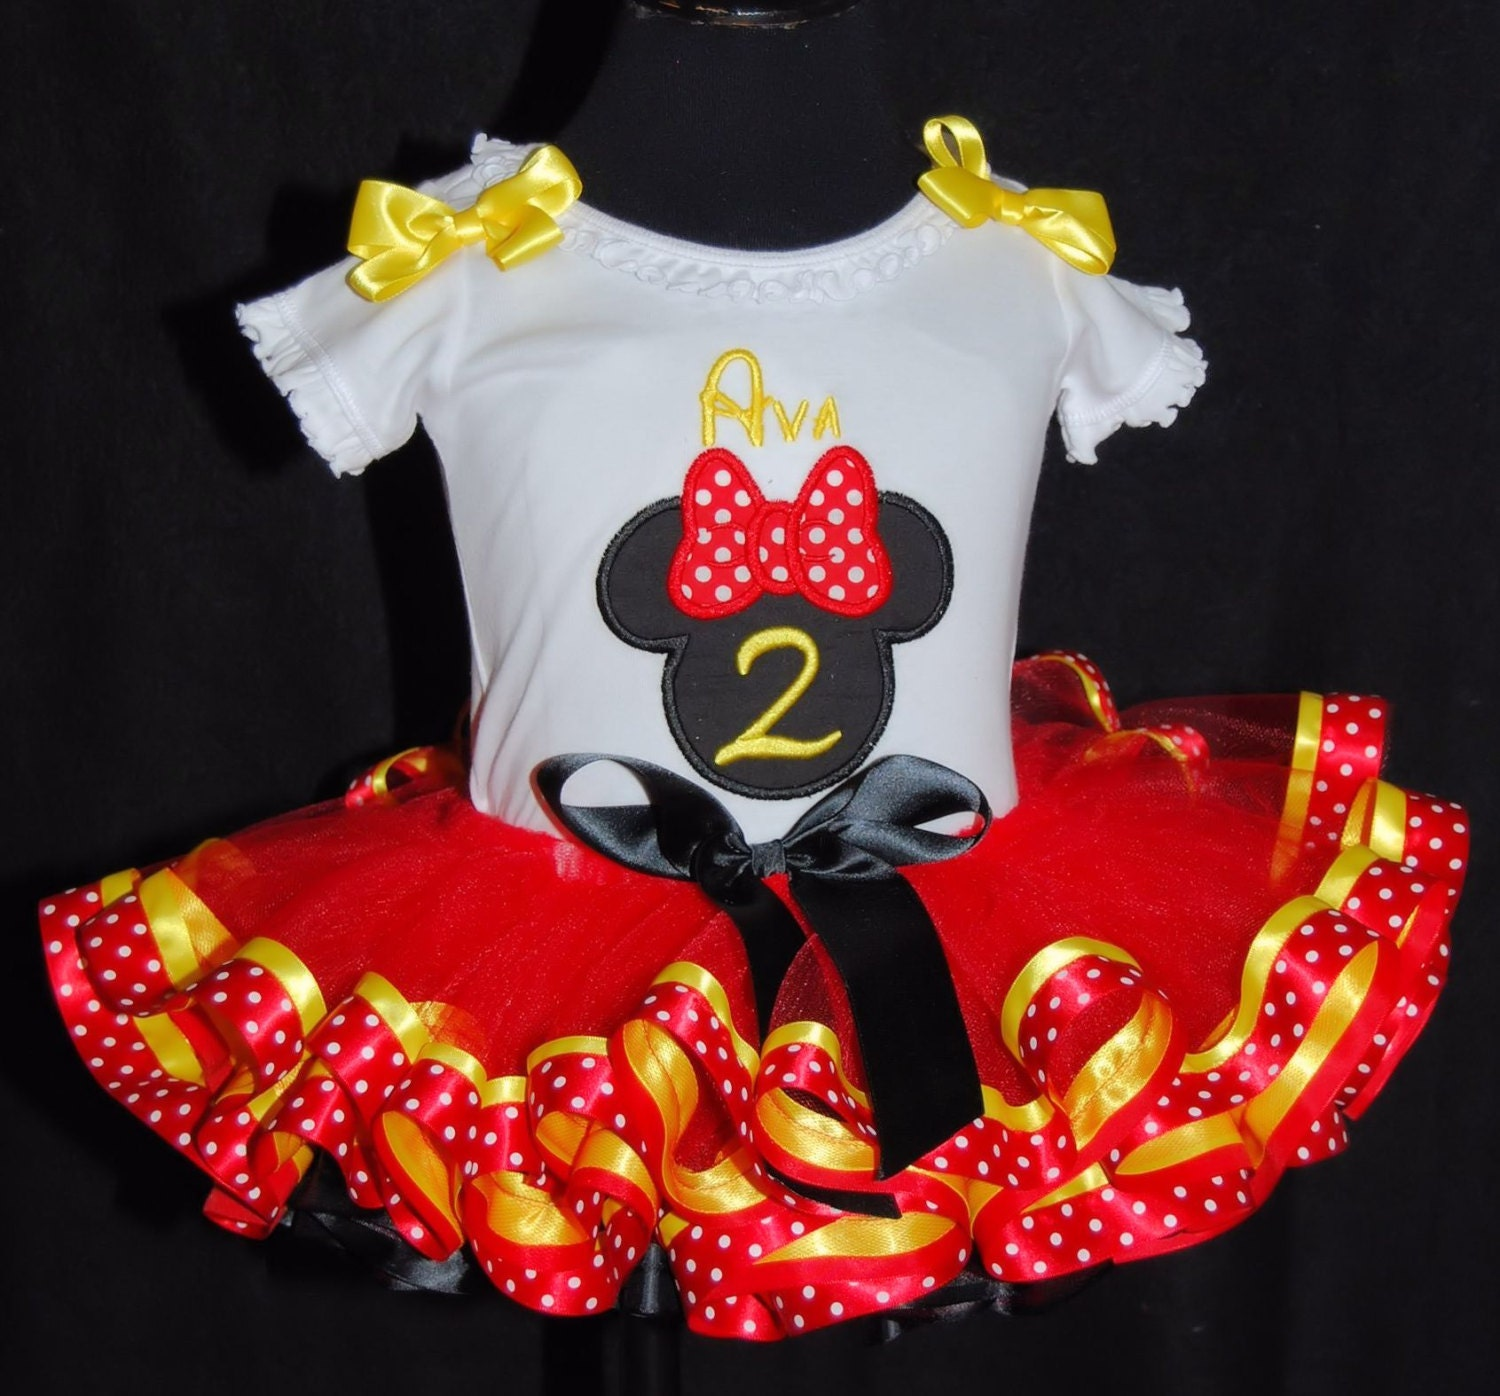 2nd birthday outfit girl, tutu for 2 year old, Minnie Mouse birthday, toddler tutu dress, second birthday outfit, ribbon trimmed tutu.